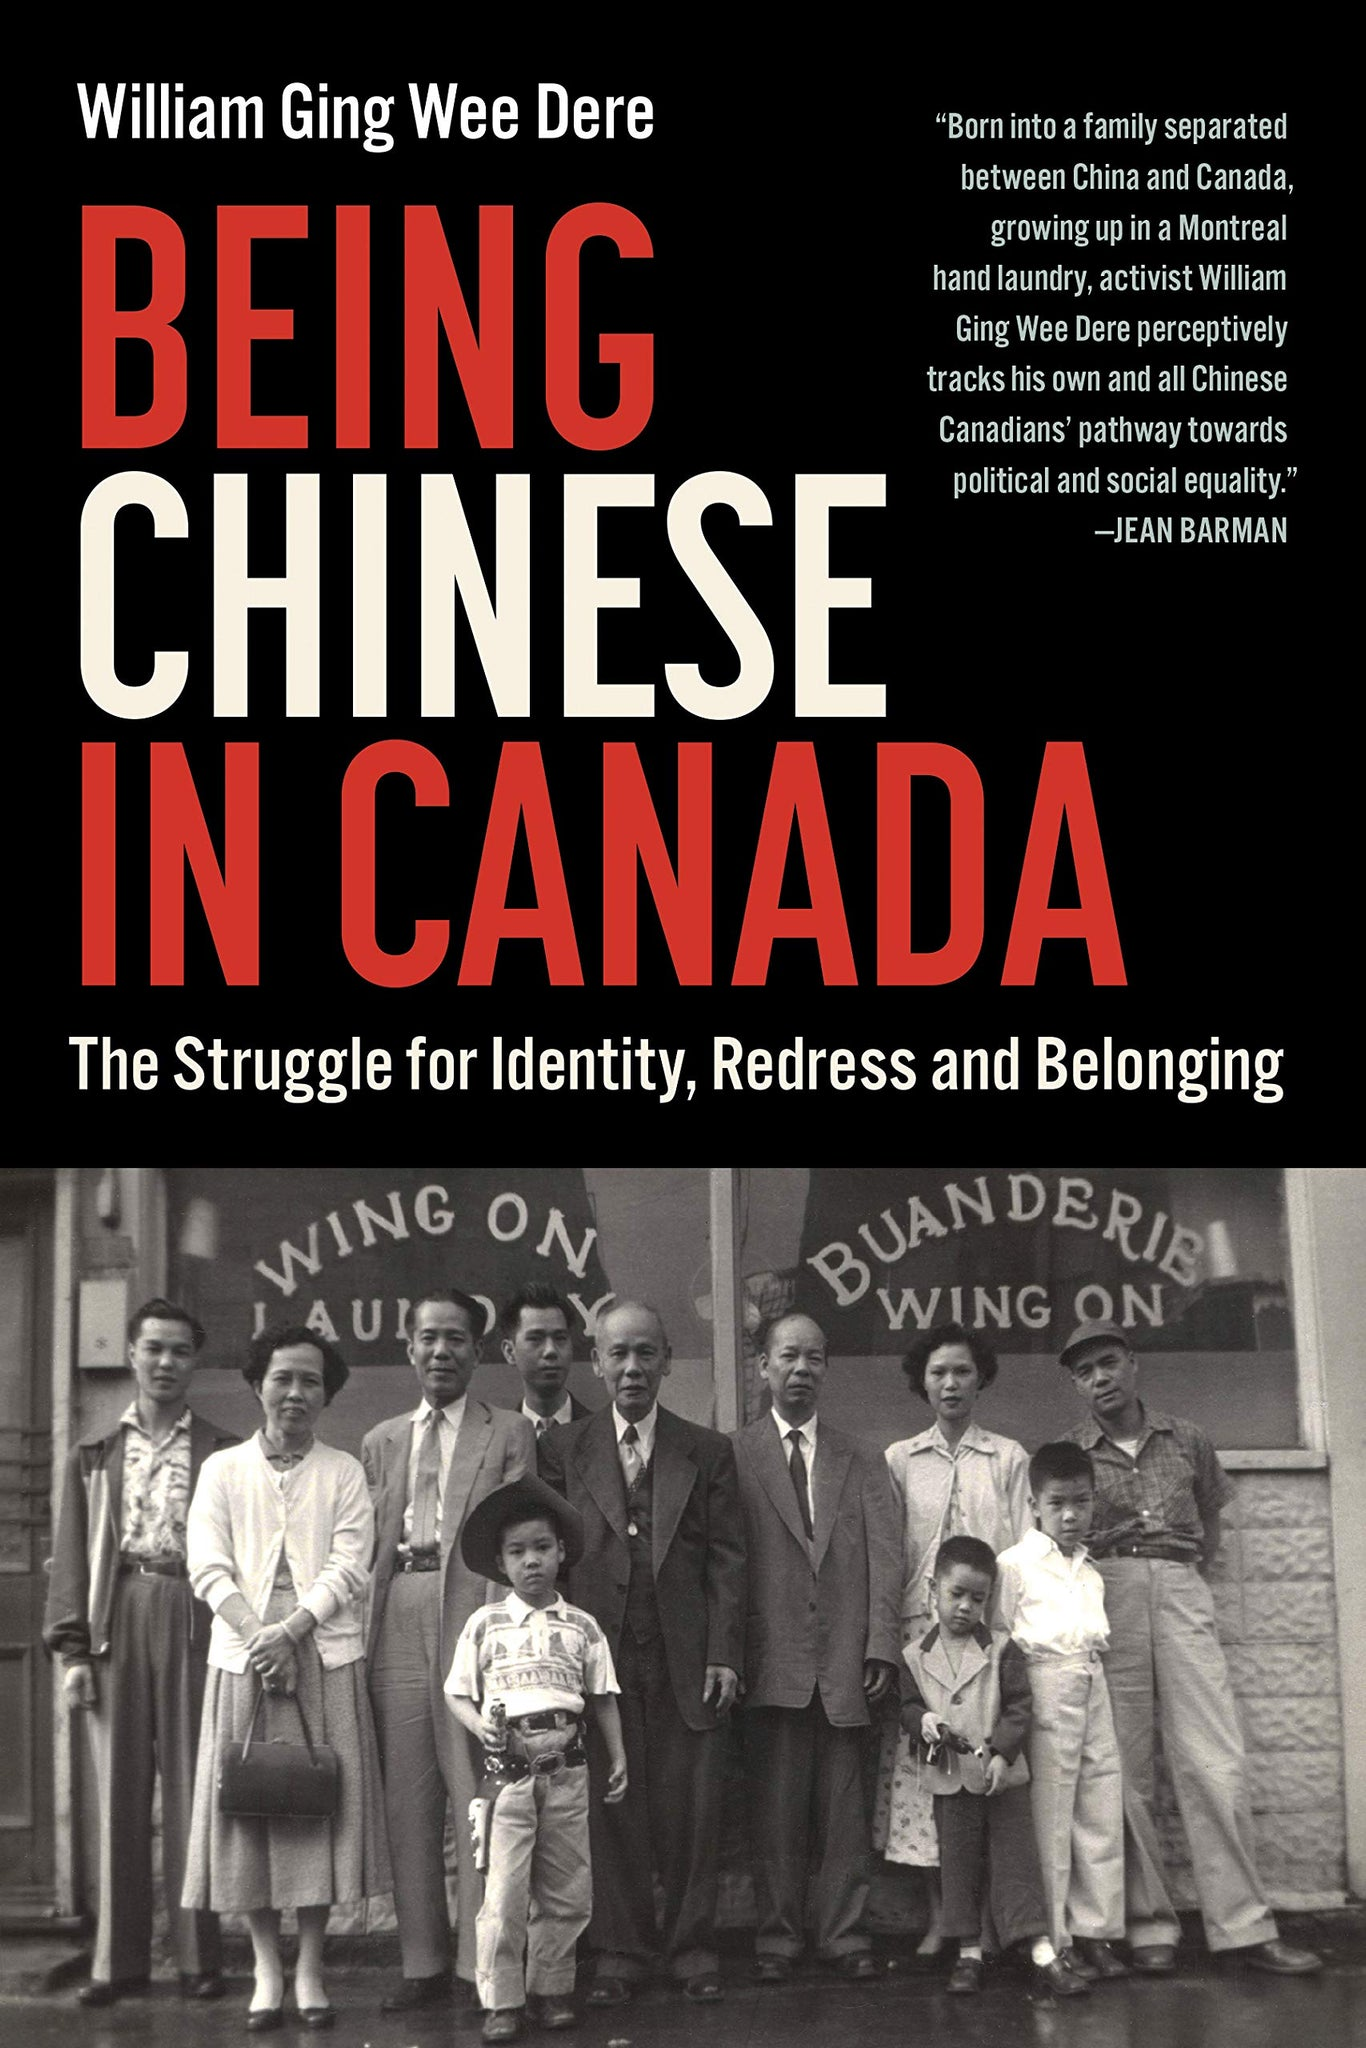 Being chinese in Canada : The Struggle for Identity, Redress and Belonging